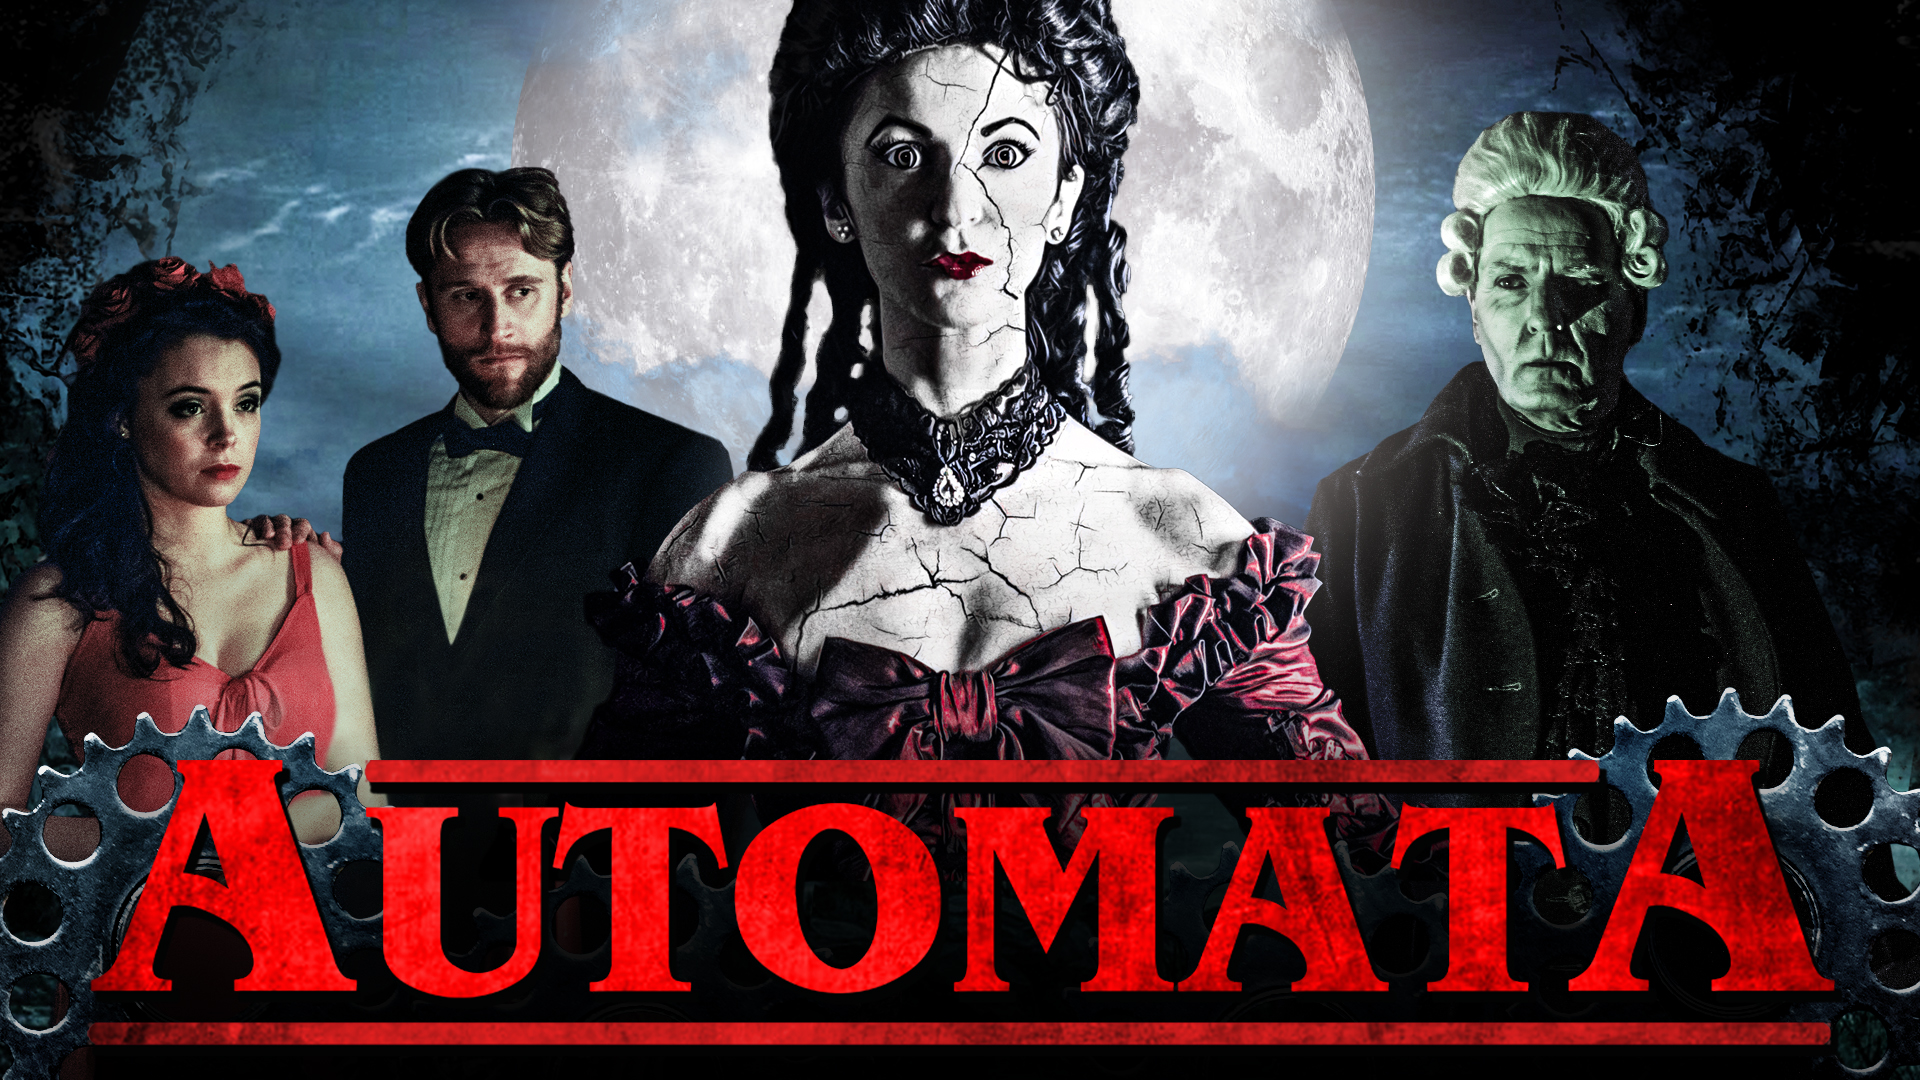 """PRESS RELEASE - 'Automata' Set To Spring To Life After Record-Breaking Crowdfunder'Automata,' the latest horror from Scottish genre house Hex Studios, has smashed its £80K ($108K) Kickstarter goal, with days left in the campaign. Horror fans from all over the world have rallied to support the Gothic chiller, earning the film a place in Kickstarter history as the UK's most funded narrative film ever.The film tells the story of antiques expert Brendan Cole who is sent to authenticate a 300-year-old clockwork doll with a notorious history, known as 'The Infernal Princess'. In the remote Scottish mansion where it has been discovered, Brendan soon finds himself the victim of the automaton's legendary curse.As well as being a hit with horror fans, the campaign has garnered support along the way from genre heavyweights such as 'Doomsday' actor Craig Conway, 'Fashionista' director Simon Rumley, 'Ghost Stories' actor/director Andy Nyman, and StudioADI, the Academy Award-winning creature effects company behind 'Starship Troopers', 'Tremors', and 'It'.The team have announced a set of stretch goals which would see epic battle scenes added to the film, featuring phantom horsemen and a legion of ghost soldiers. There's still time to get your hands on the Kickstarter-exclusive rewards including T-shirts, Collector's Editions, Owlman plushes, or even a credit in the movie, before the campaign ends on the 9th of May.Director Lawrie Brewster says: """"The success of our campaign so far proves that there is a real hunger for original, independent horror, and crowdfunding really is the best option for these kinds of films. It lets the creator keep total control, so you don't have some studio head forcing you to make the film more pleasing for a mainstream audience. We're not interested in the mainstream, or following fads. We want to make strange, iconic, timeless films for true horror fans, and thanks to the incredible support we've received, we can continue to do just that!""""The film sta"""